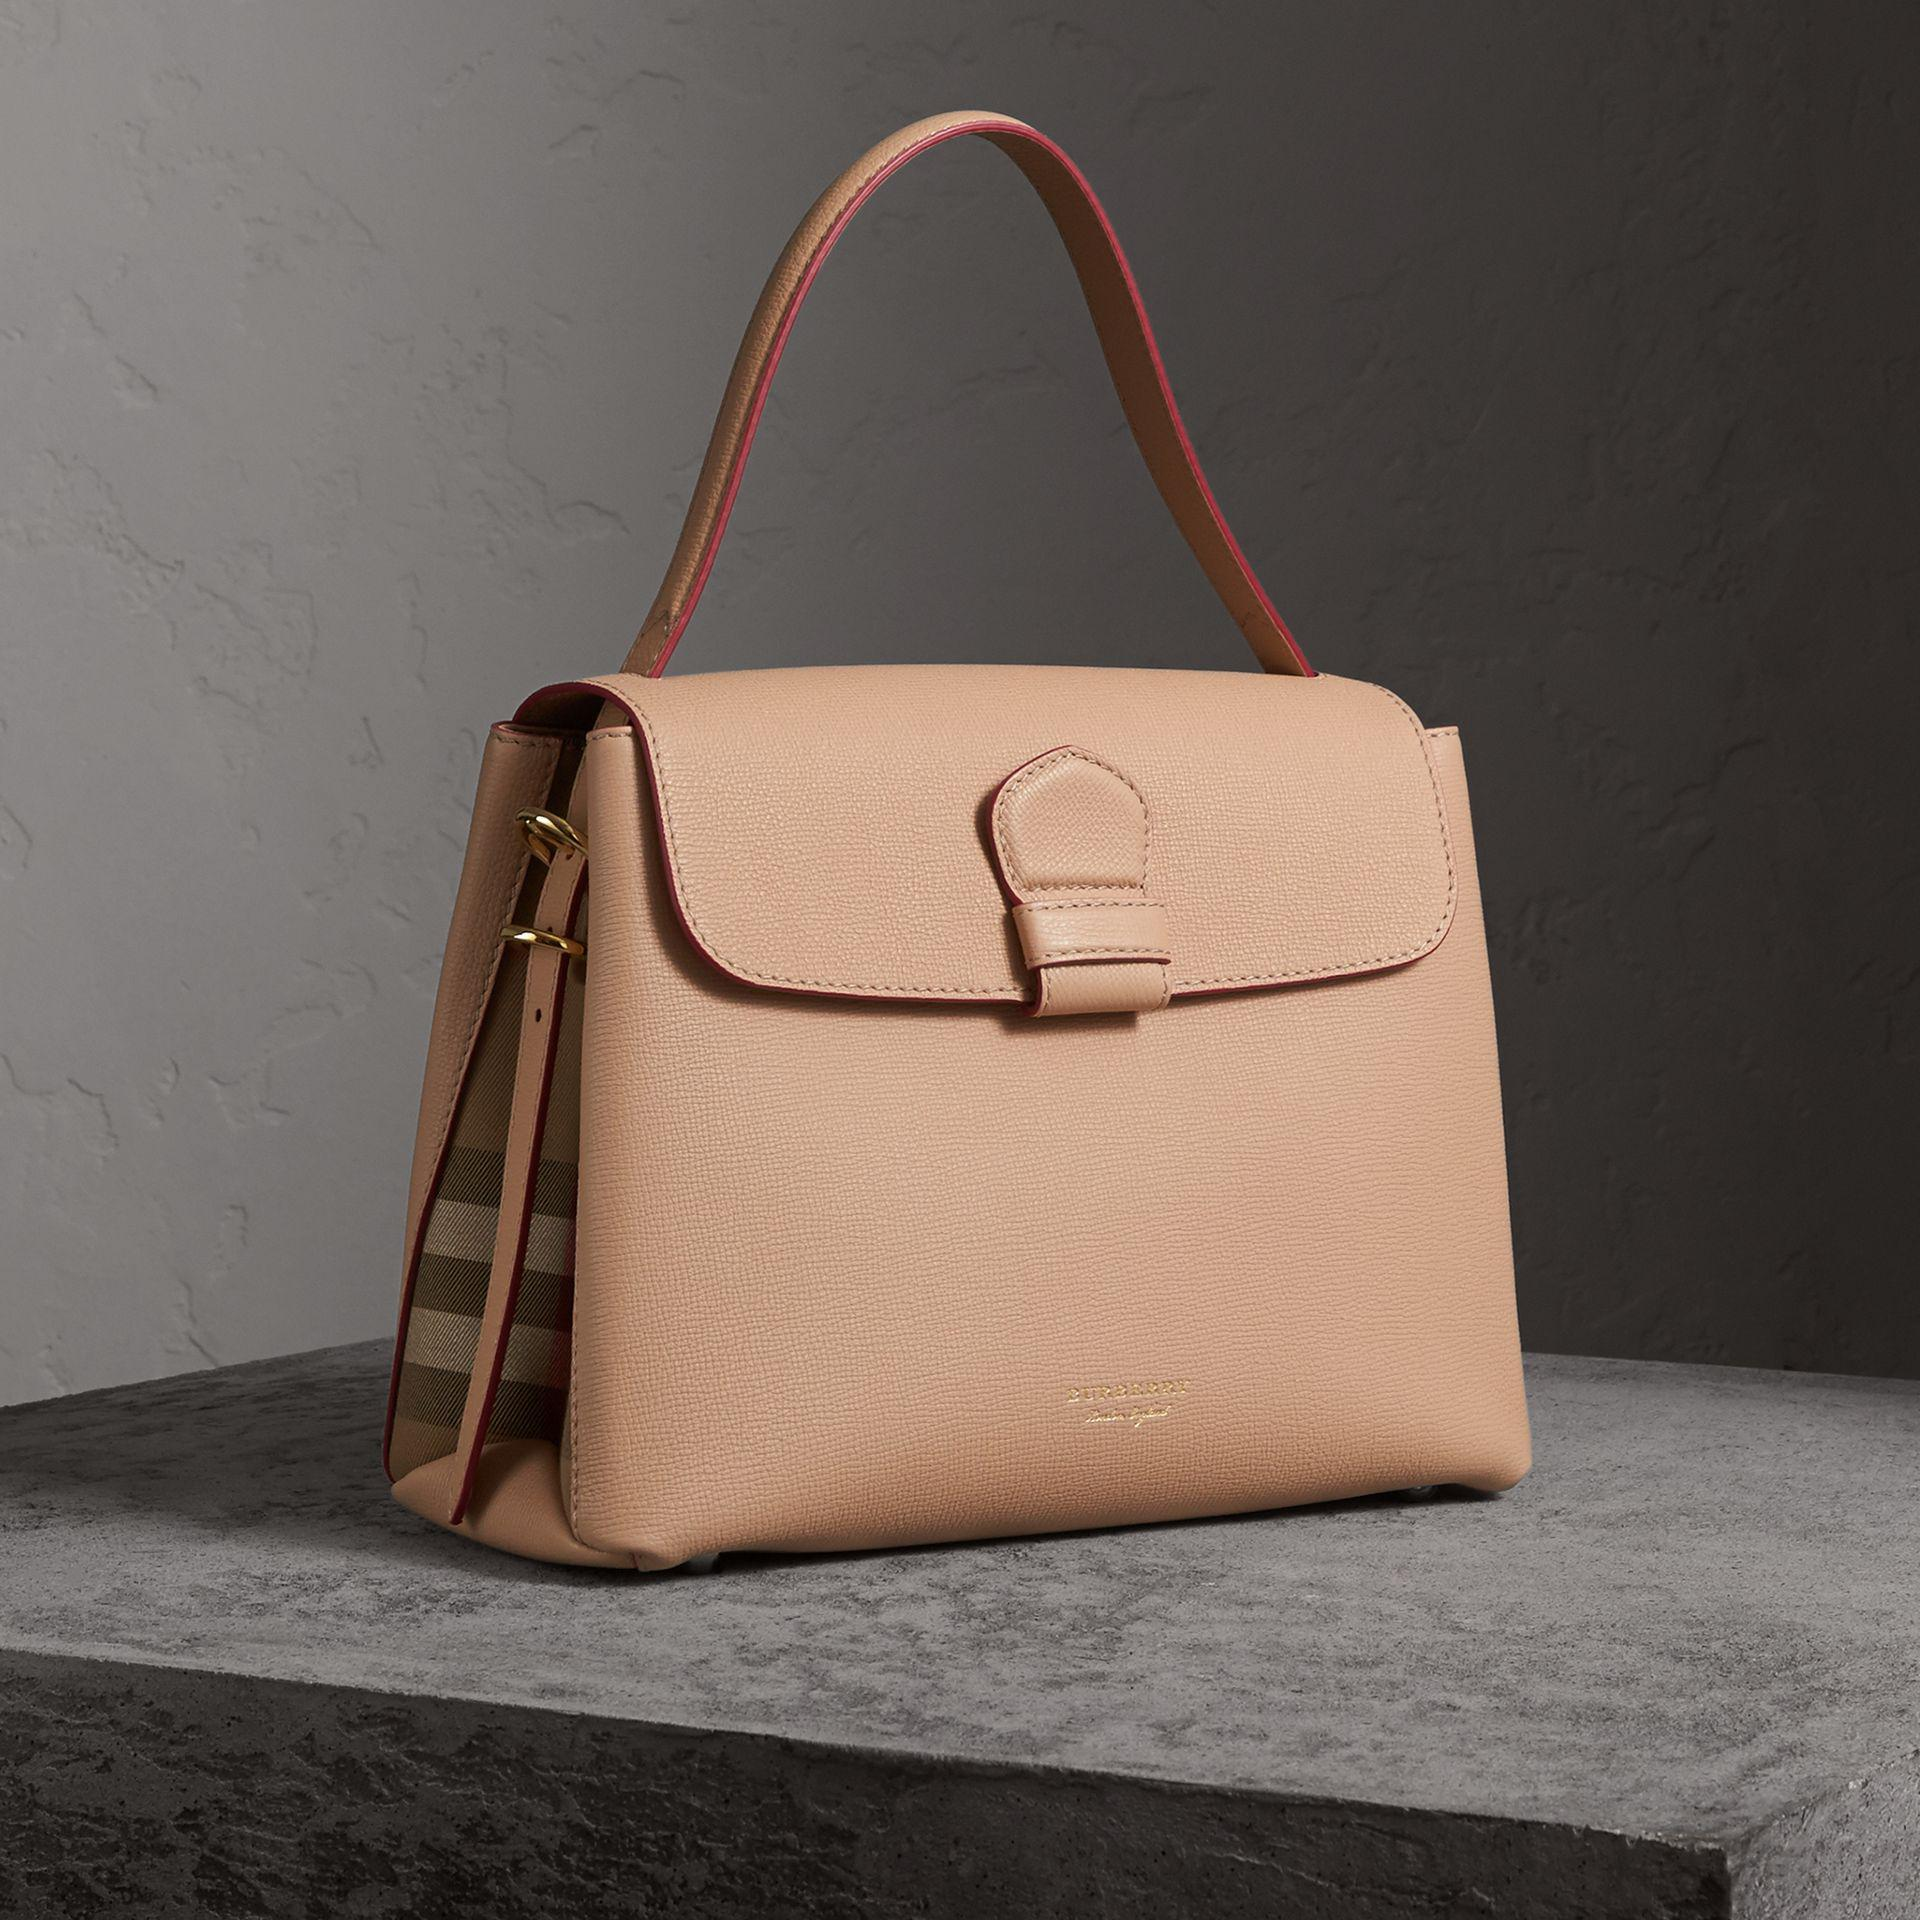 bb0fa87c030a Lyst - Burberry Medium Grainy Leather And House Check Tote Bag - Women